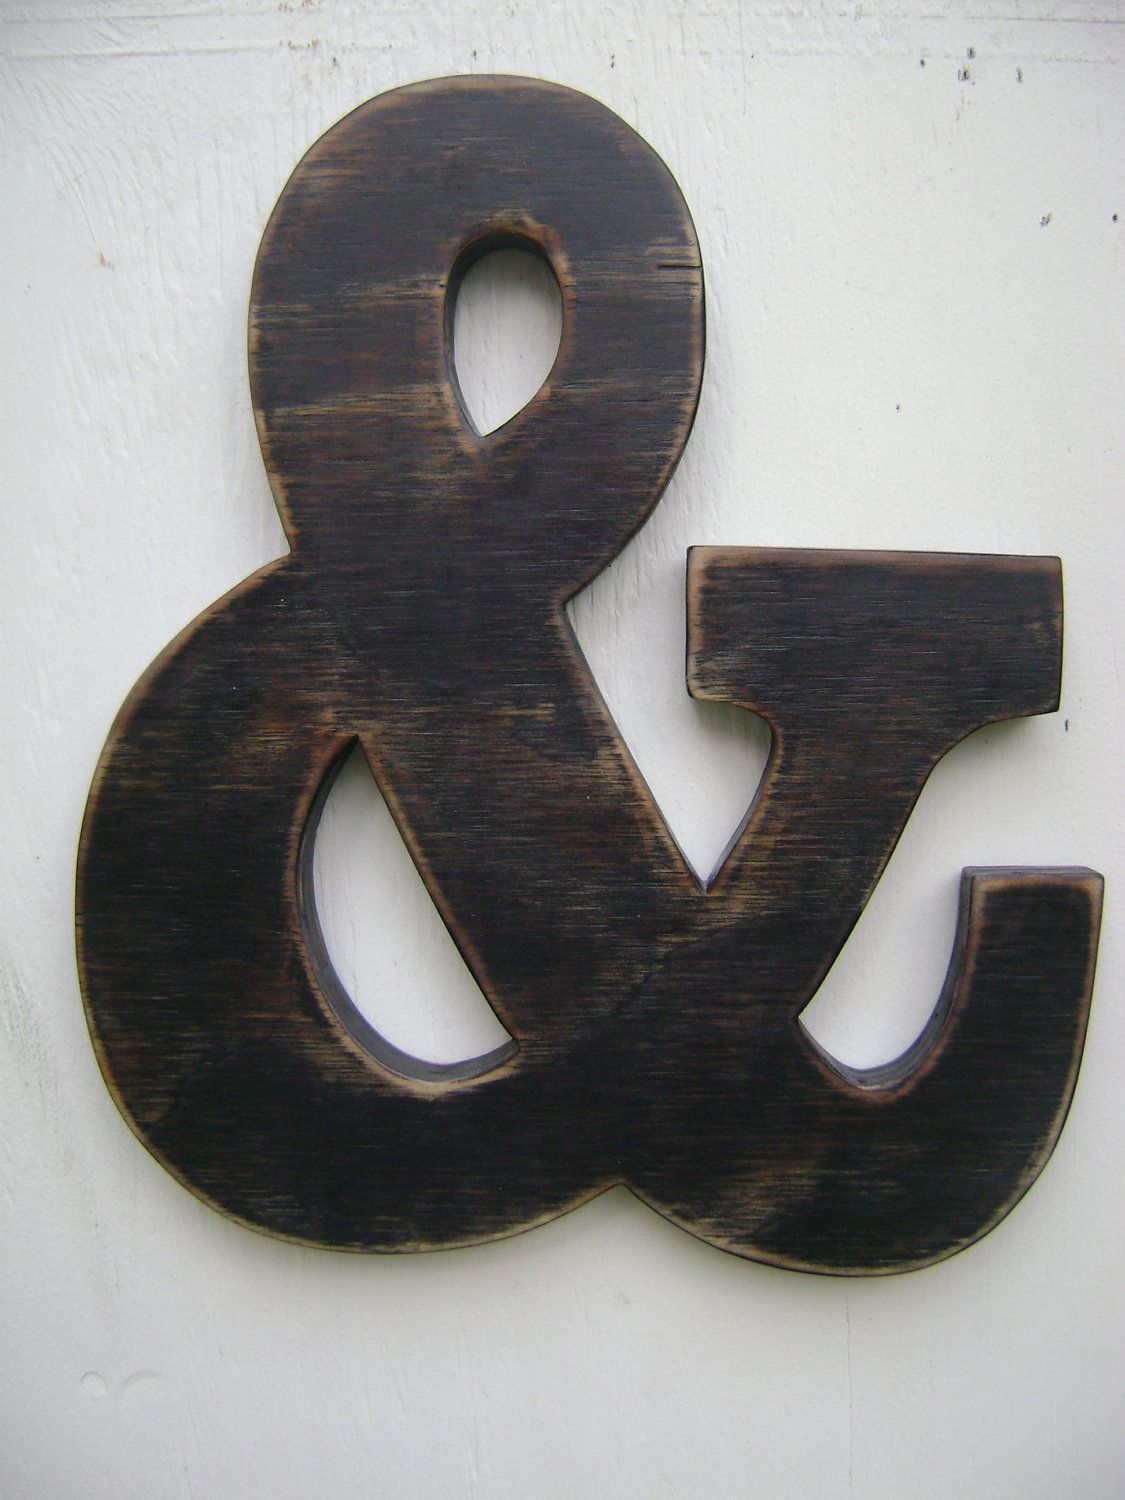 ampersand and sign rustic wall hanging wooden letters shabby chic decor black 2800